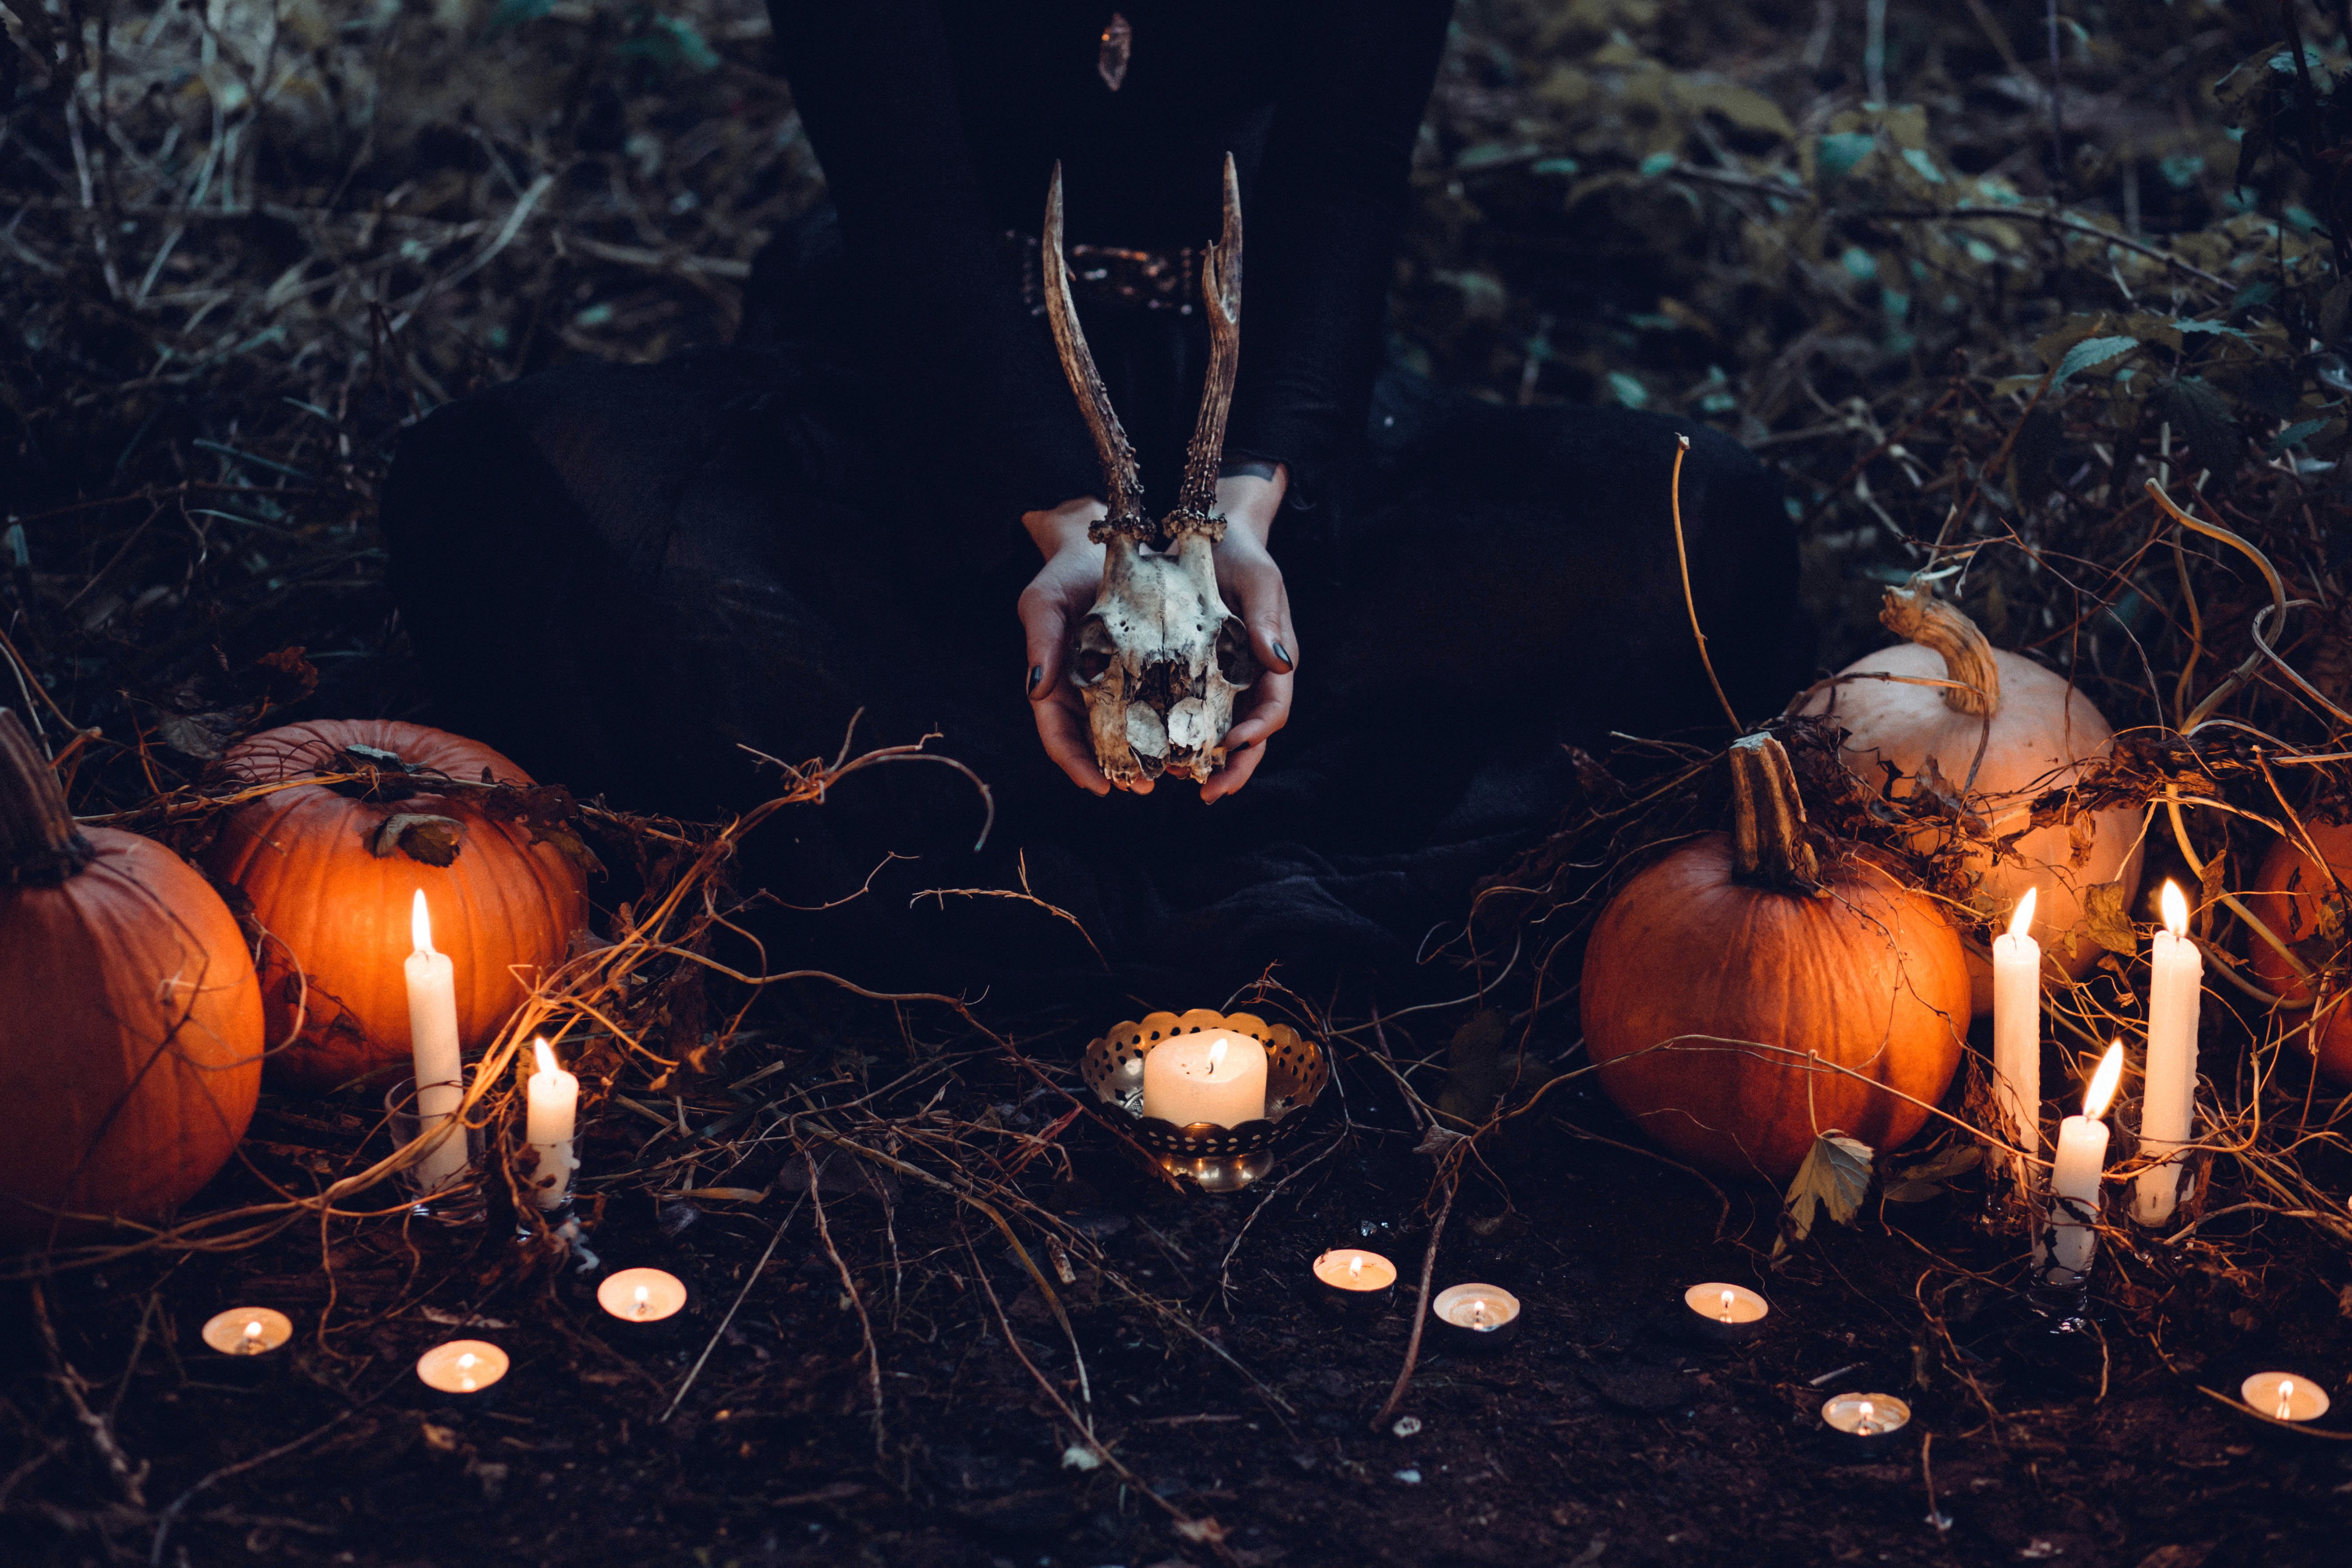 person holding cattle skull surrounded by squash and candles